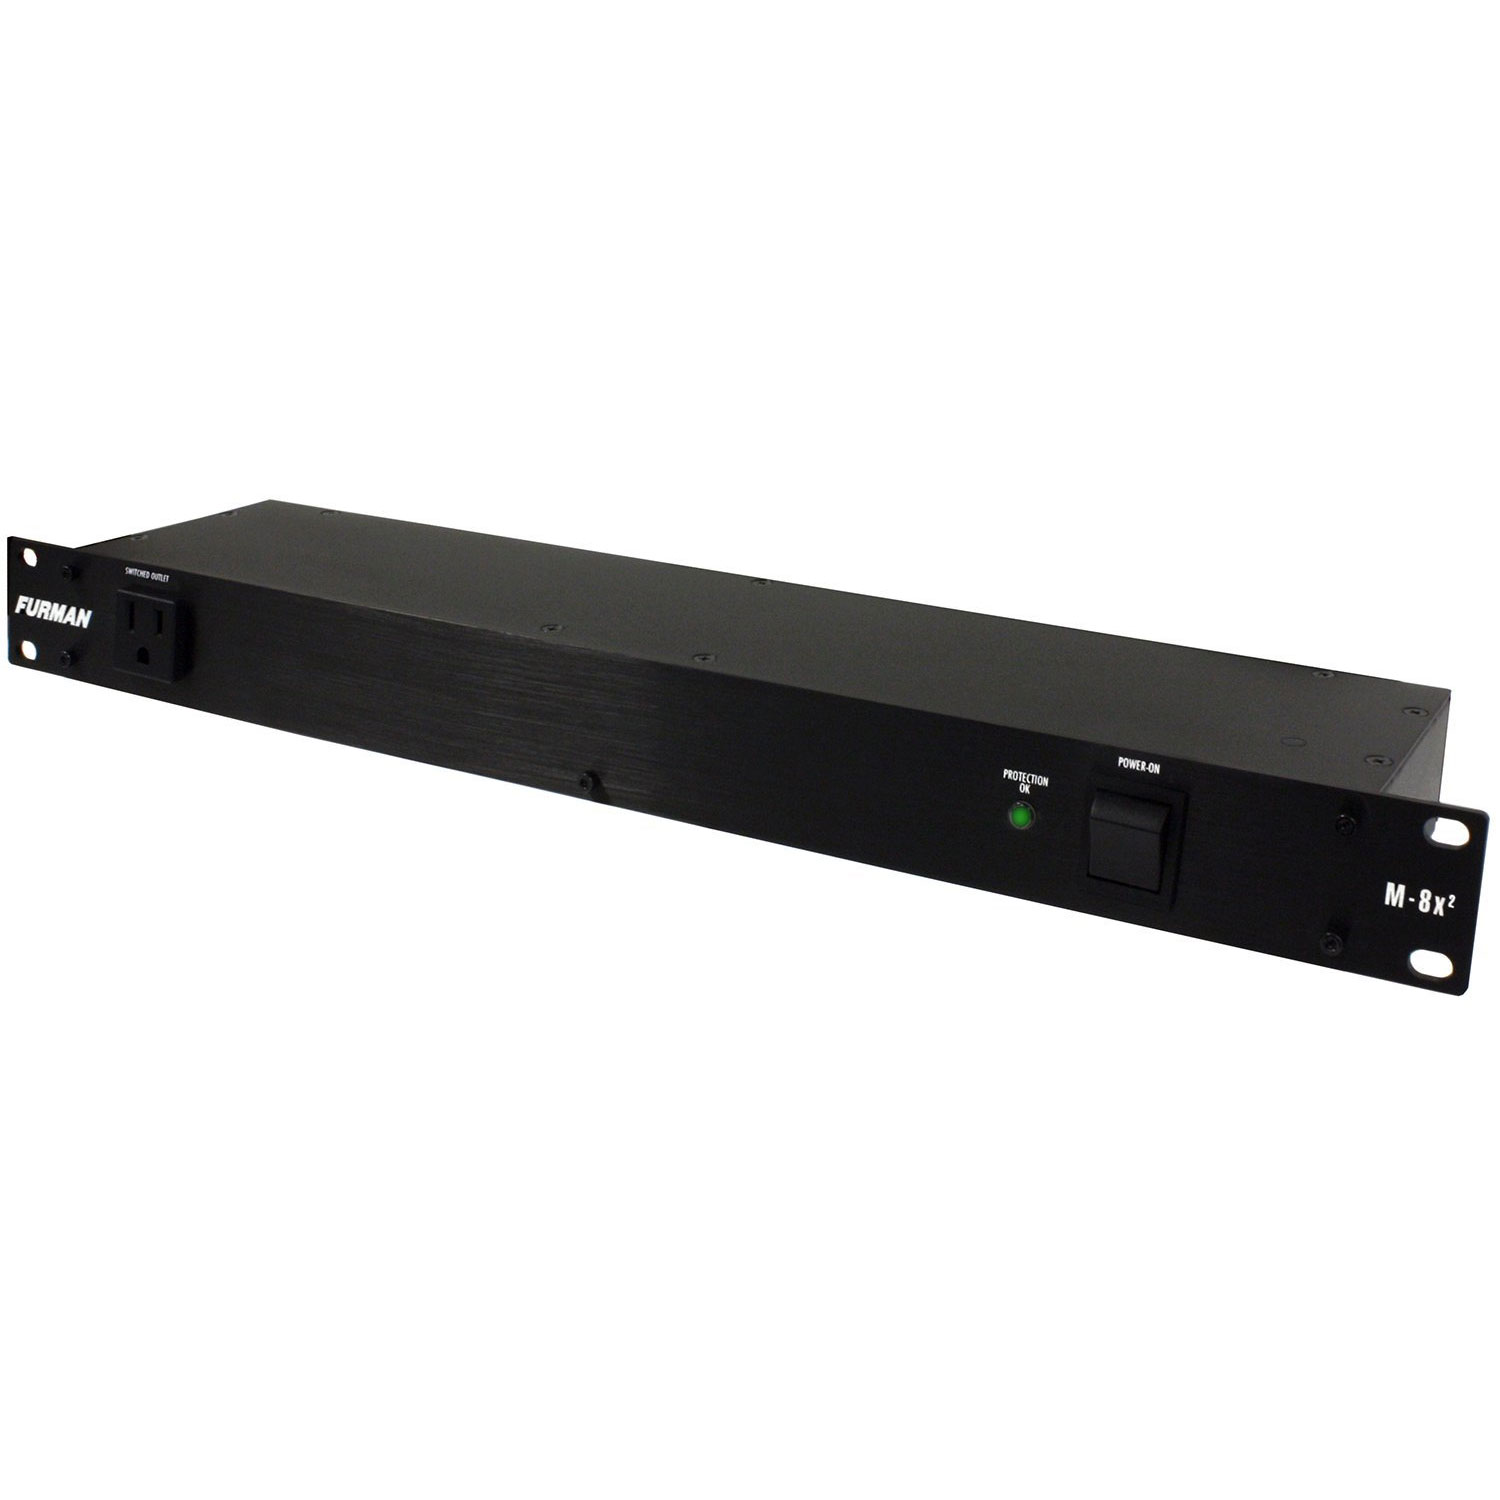 Furman 15A Standard Power Conditioner